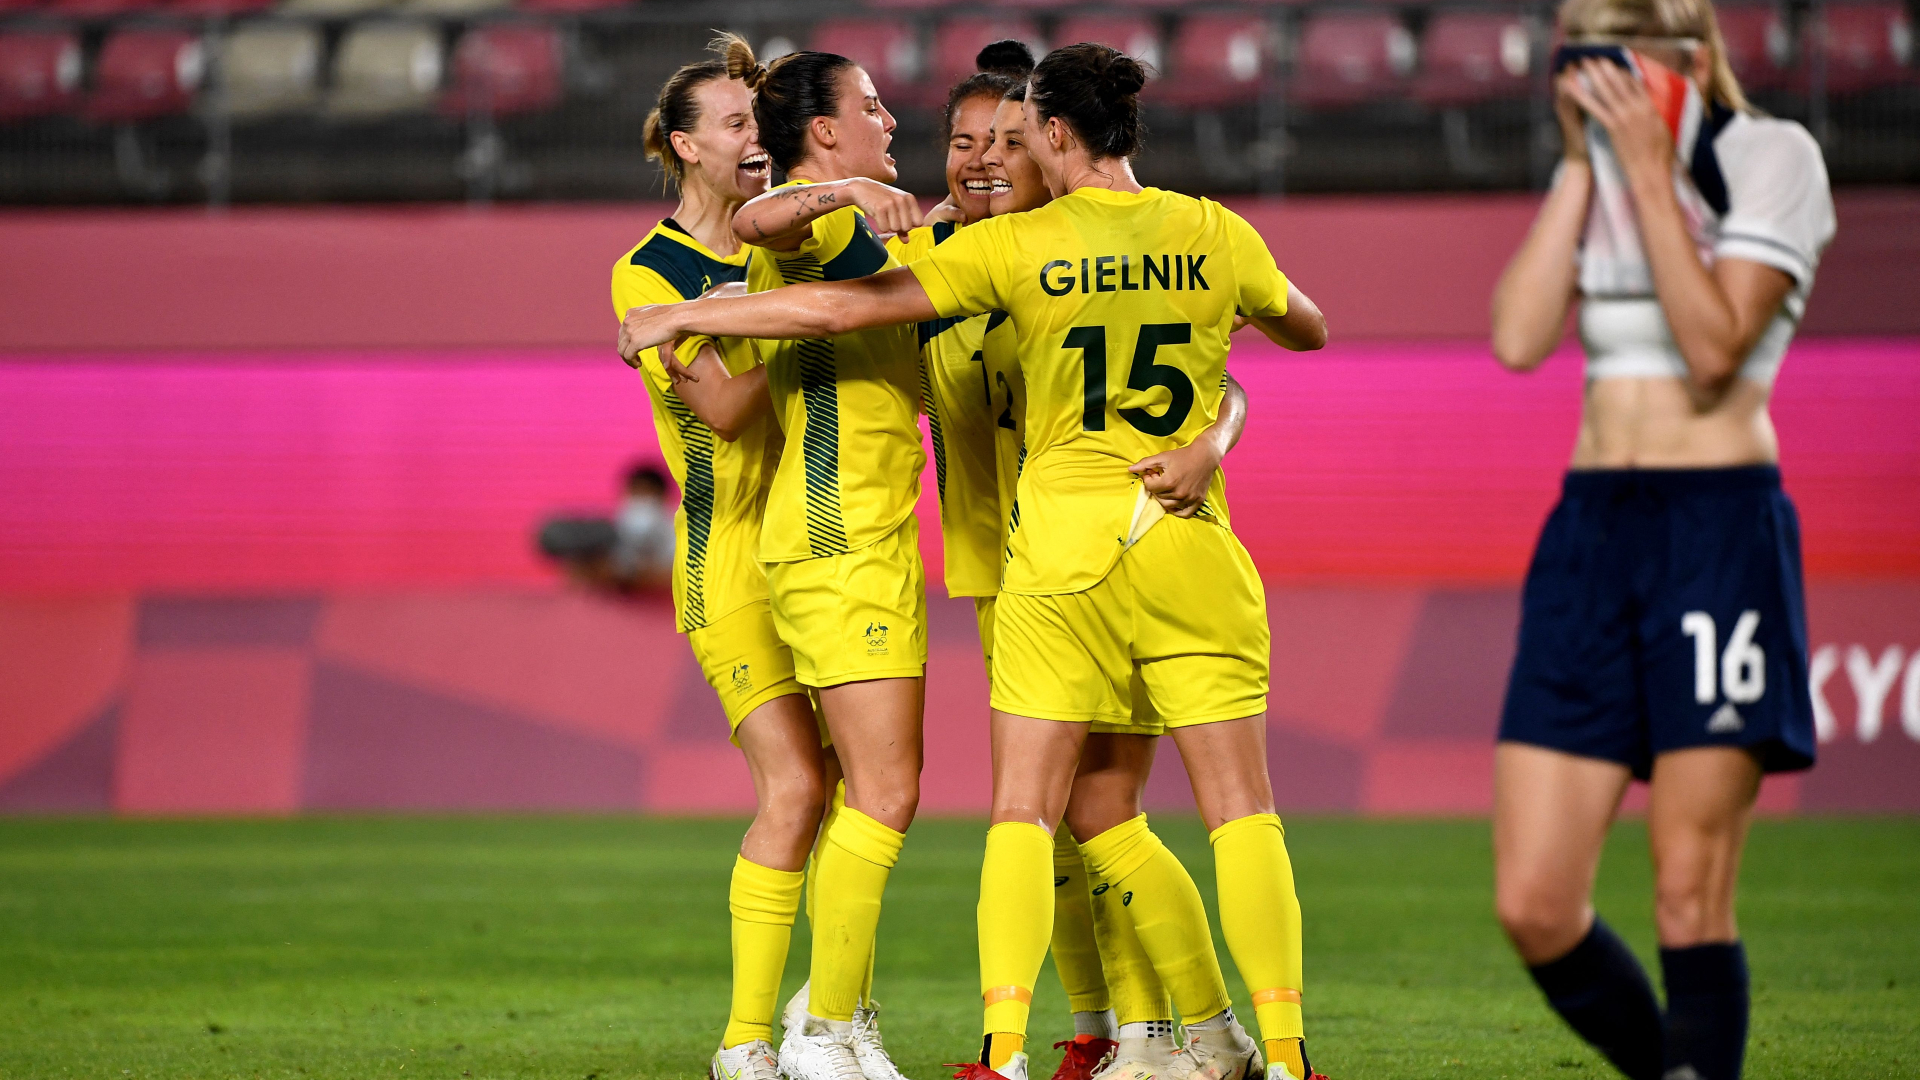 Matildas vs Sweden: When, where, team news, squads, odds and how to watch the Olympics semi-final in Australia